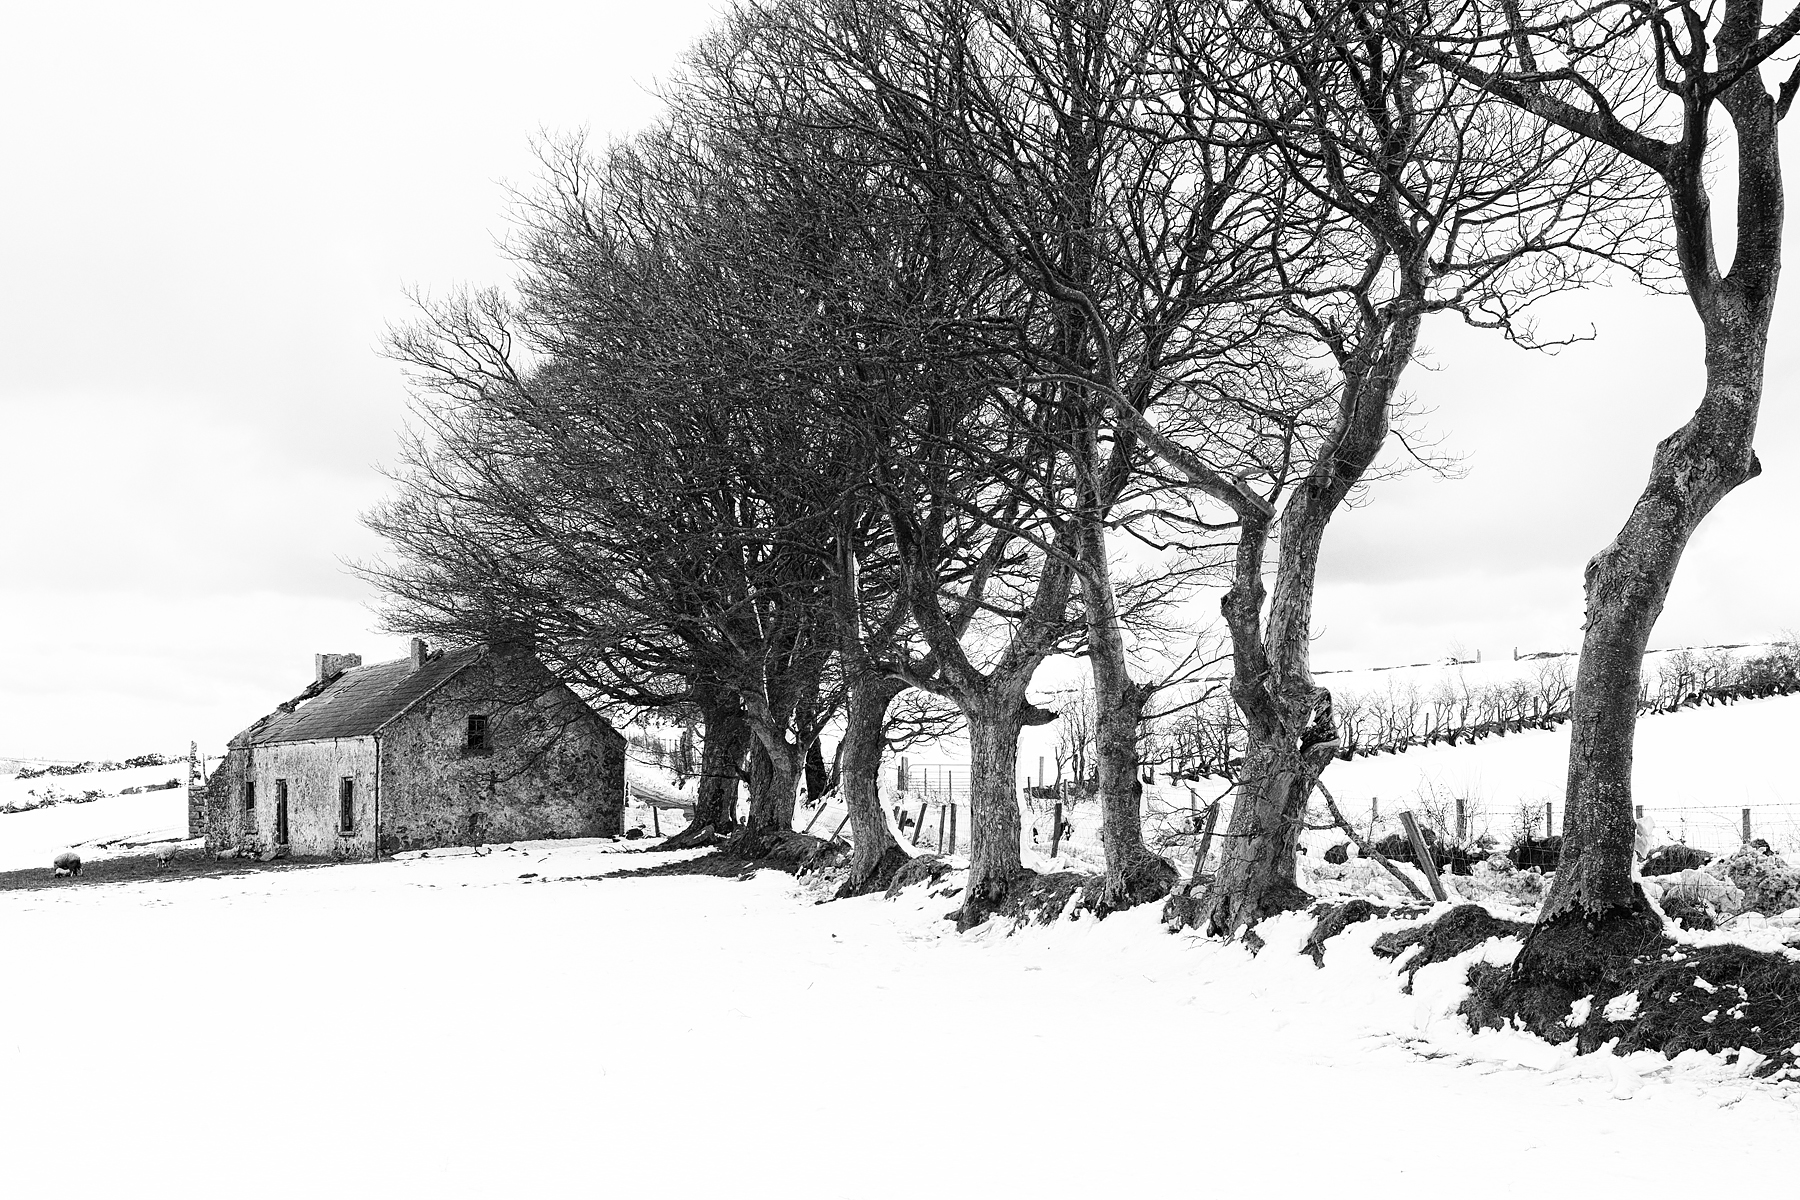 Old Cottage and Trees (since the image was made the derilict cottage has been replaced by a modern two-storey house), Co. Antrim, Northern Ireland. Canon EOS 5D III, Canon TS-E 24mm/3.5 II, ISO 400, 1/80s at f/14, Tripod. March. © Carsten Krieger.